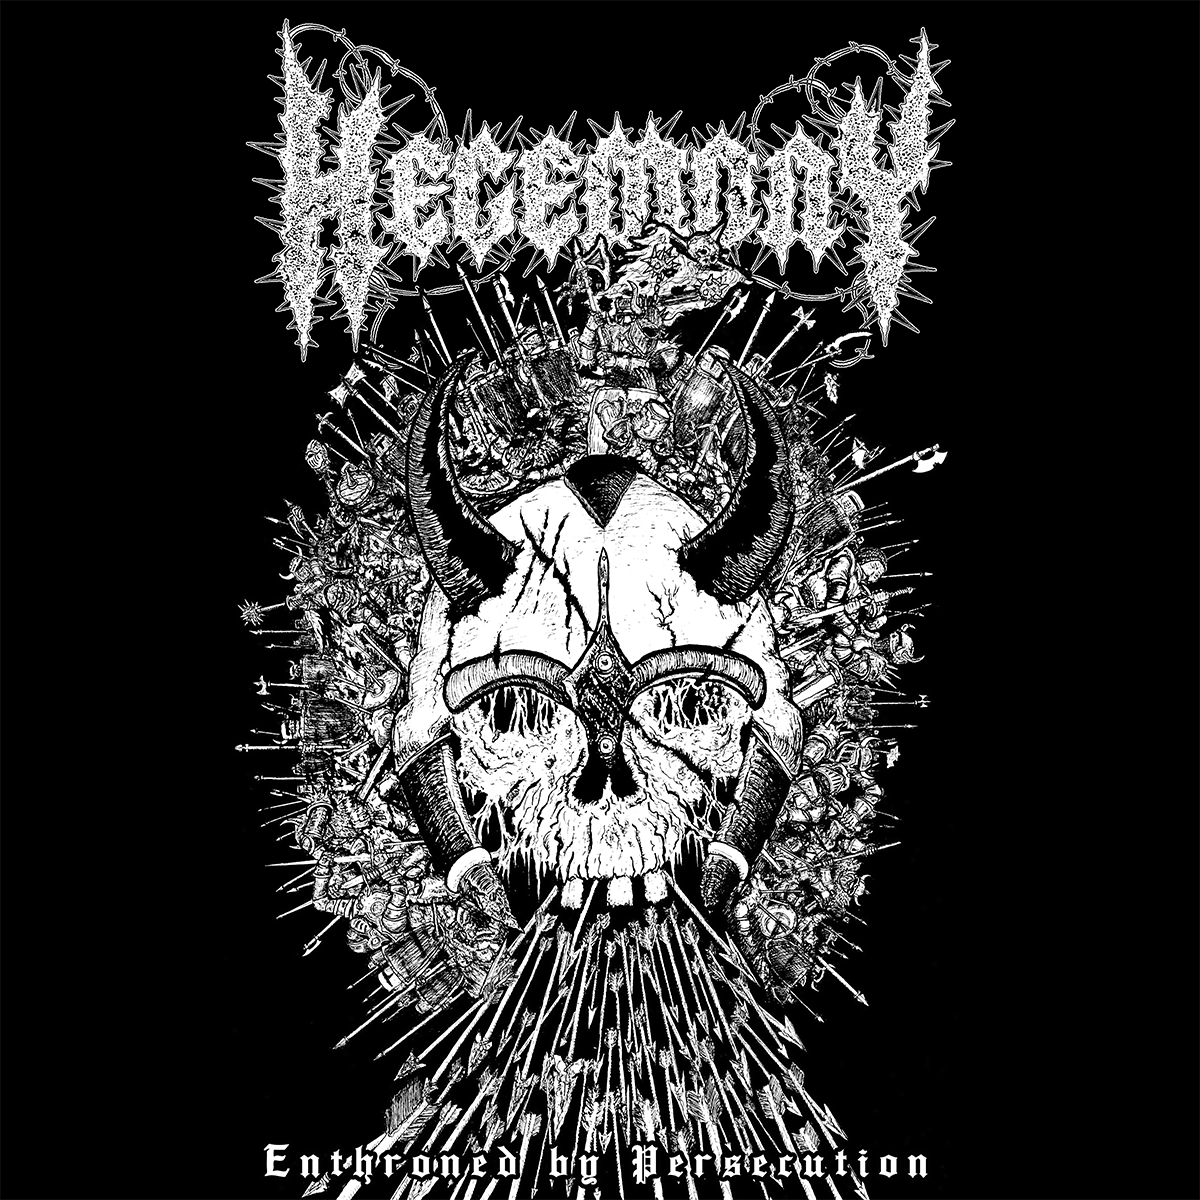 Hegemony⛧Enthroned by Persecution |review